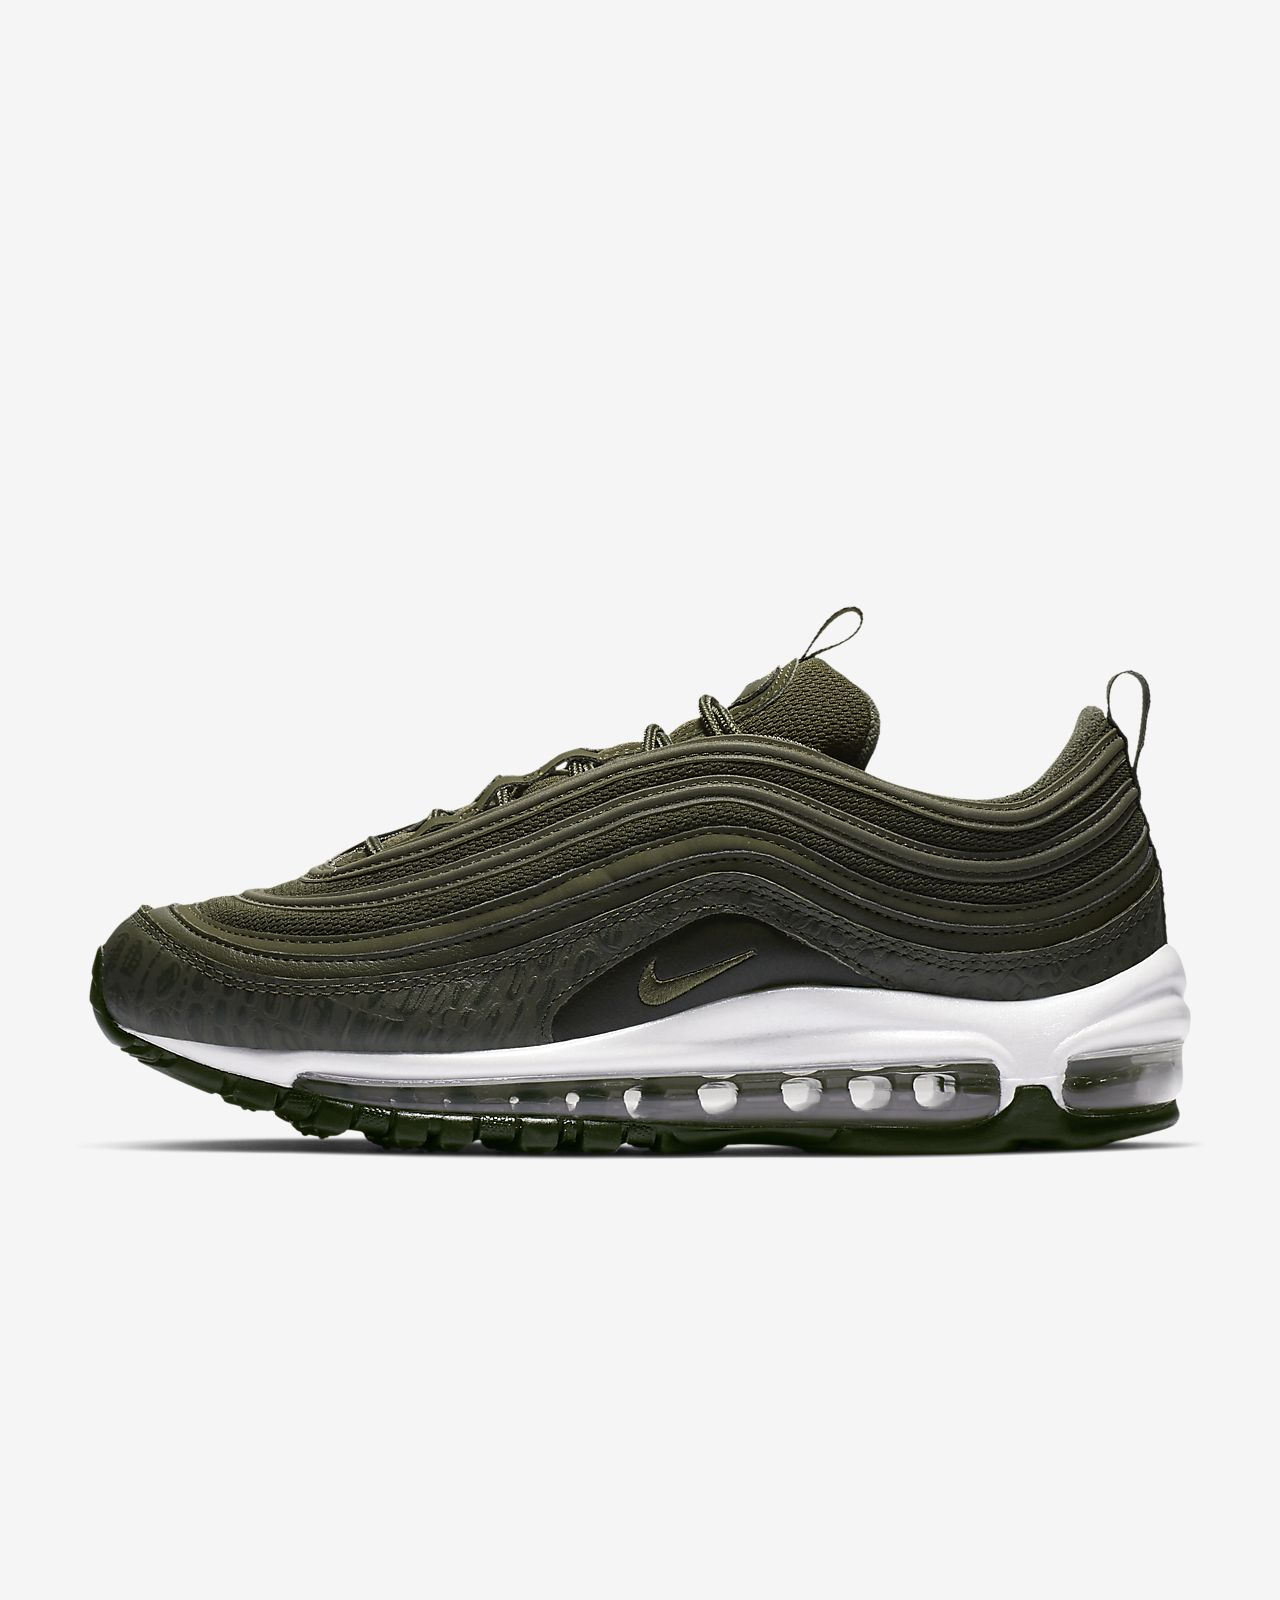 b00fcb0135f6de Nike Air Max 97 LX Women s Shoe. Nike.com GB